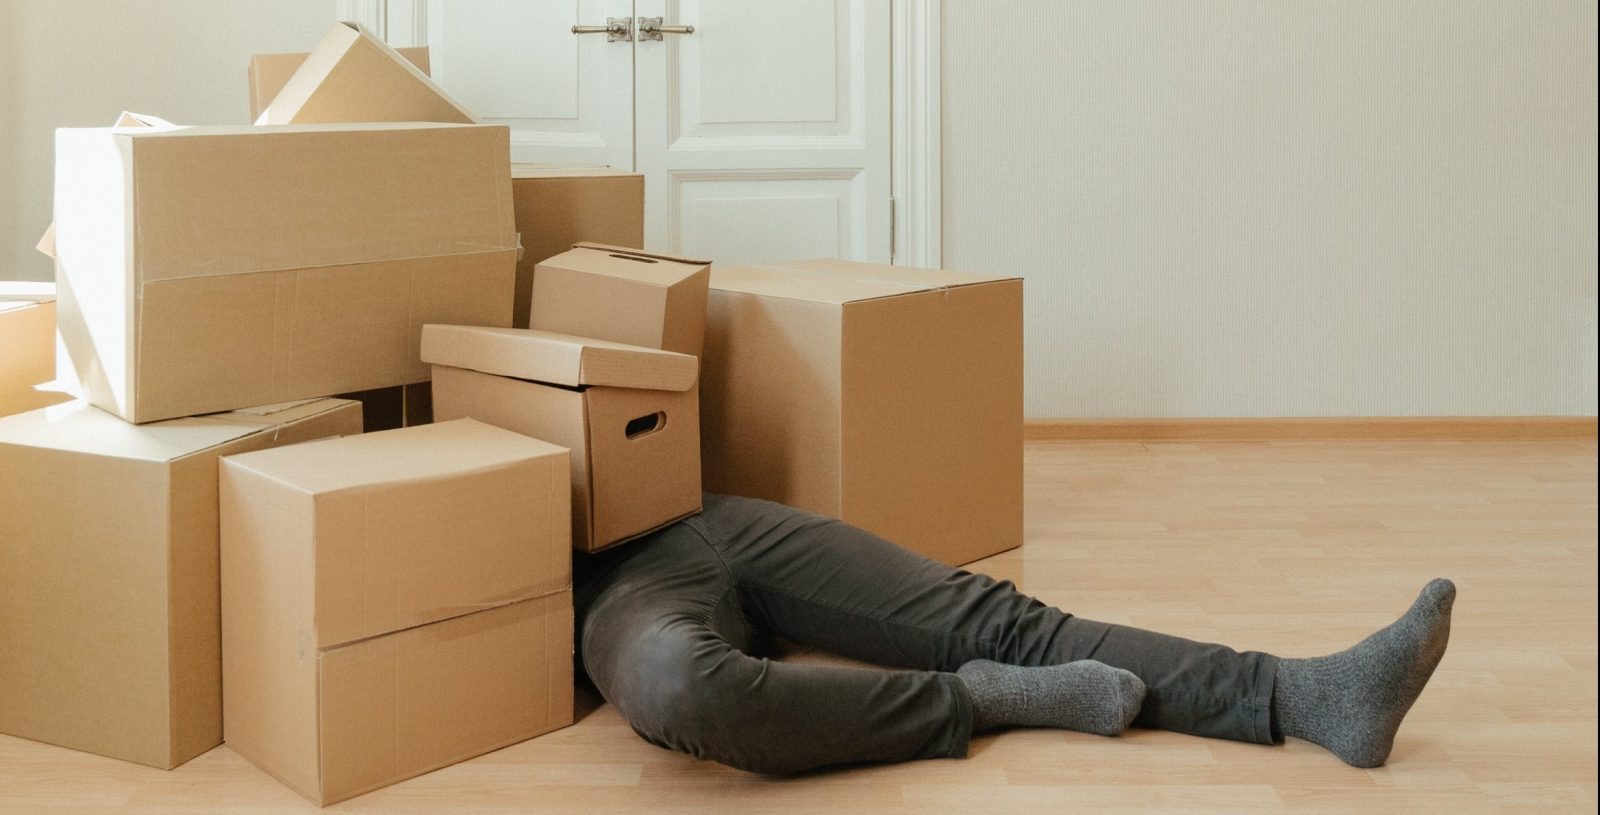 A person buried under a pile of boxes